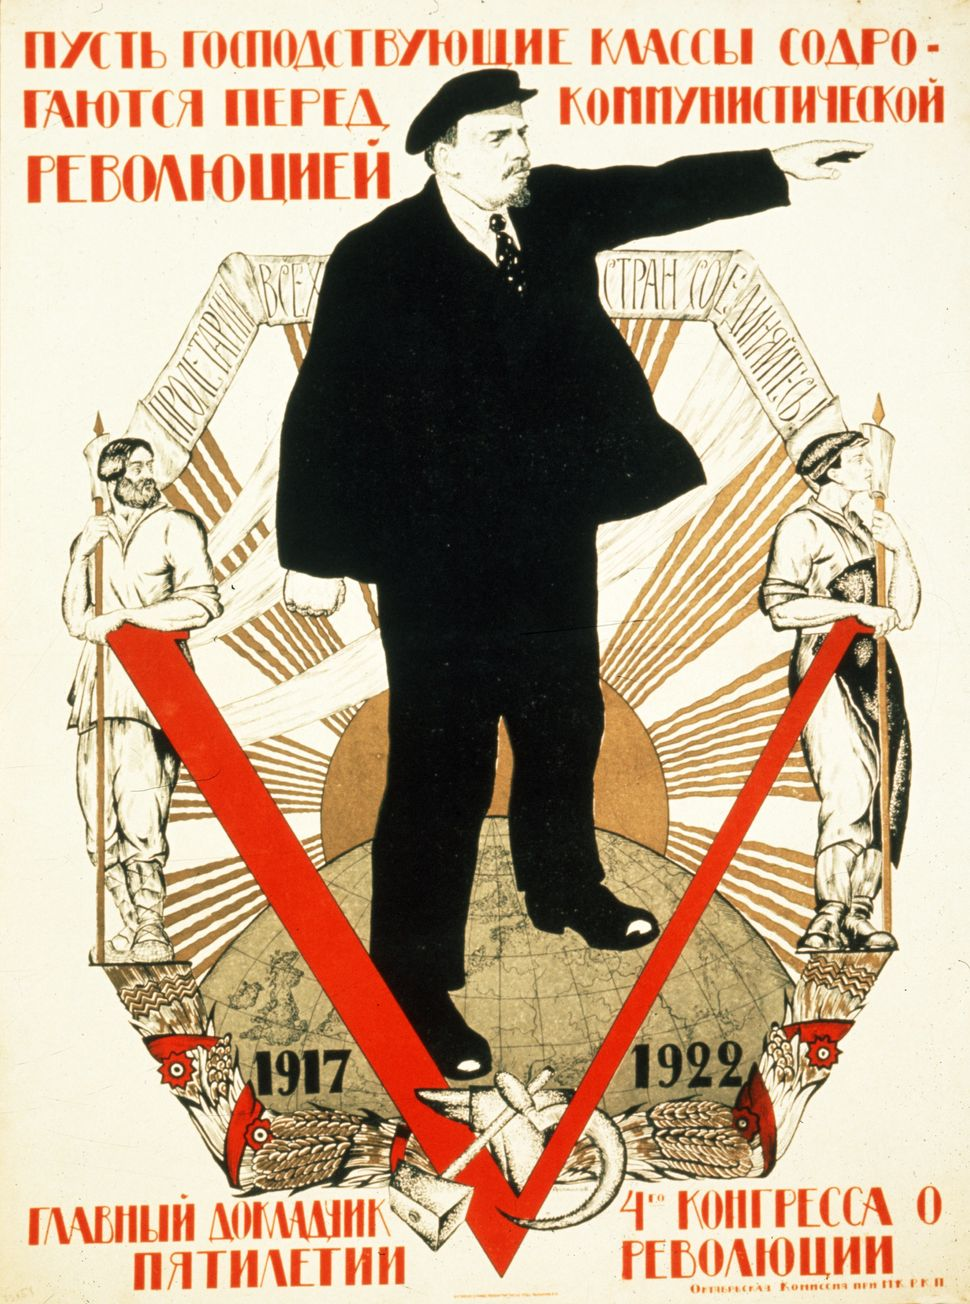 Poster from the Fourth Communist Party Conference, 1922.